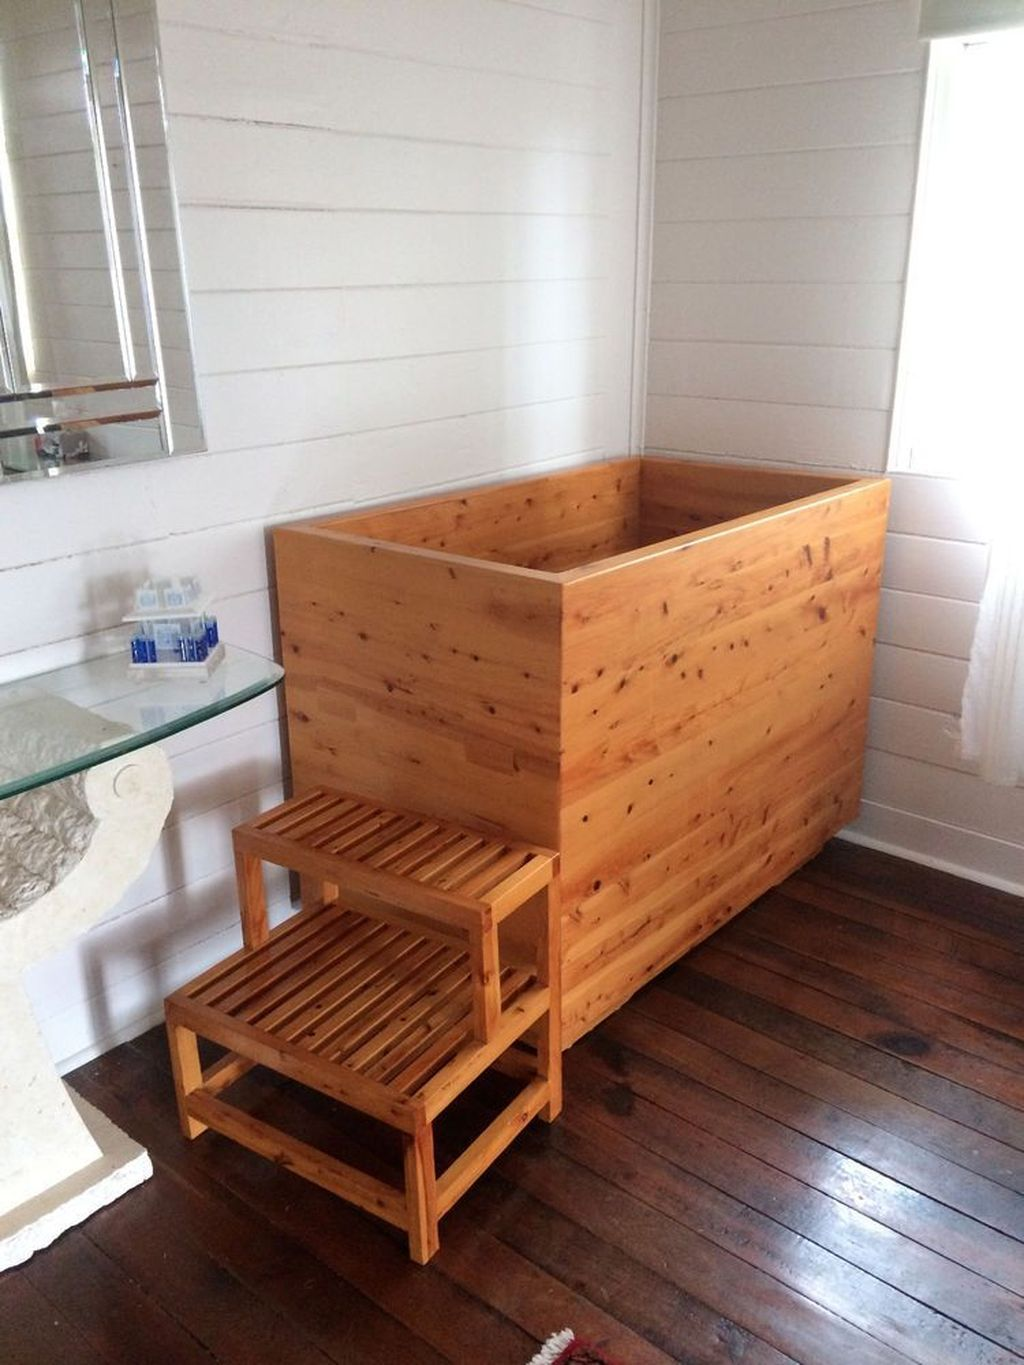 40 japanese soaking tubs inspiration for your bathroom